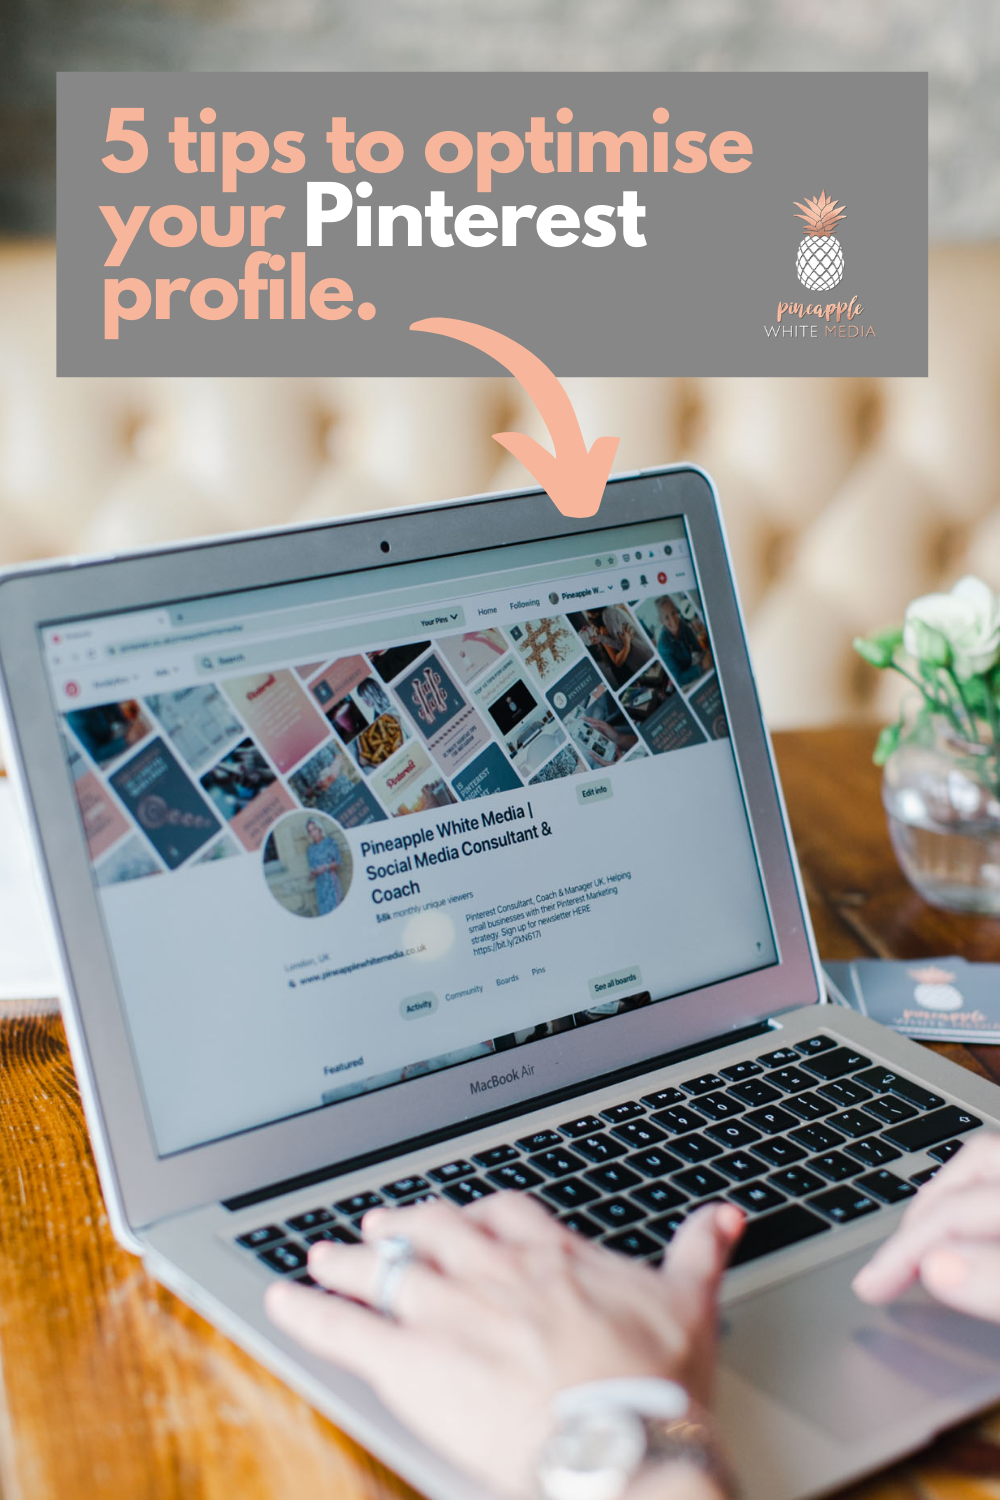 Pinterest profile tips